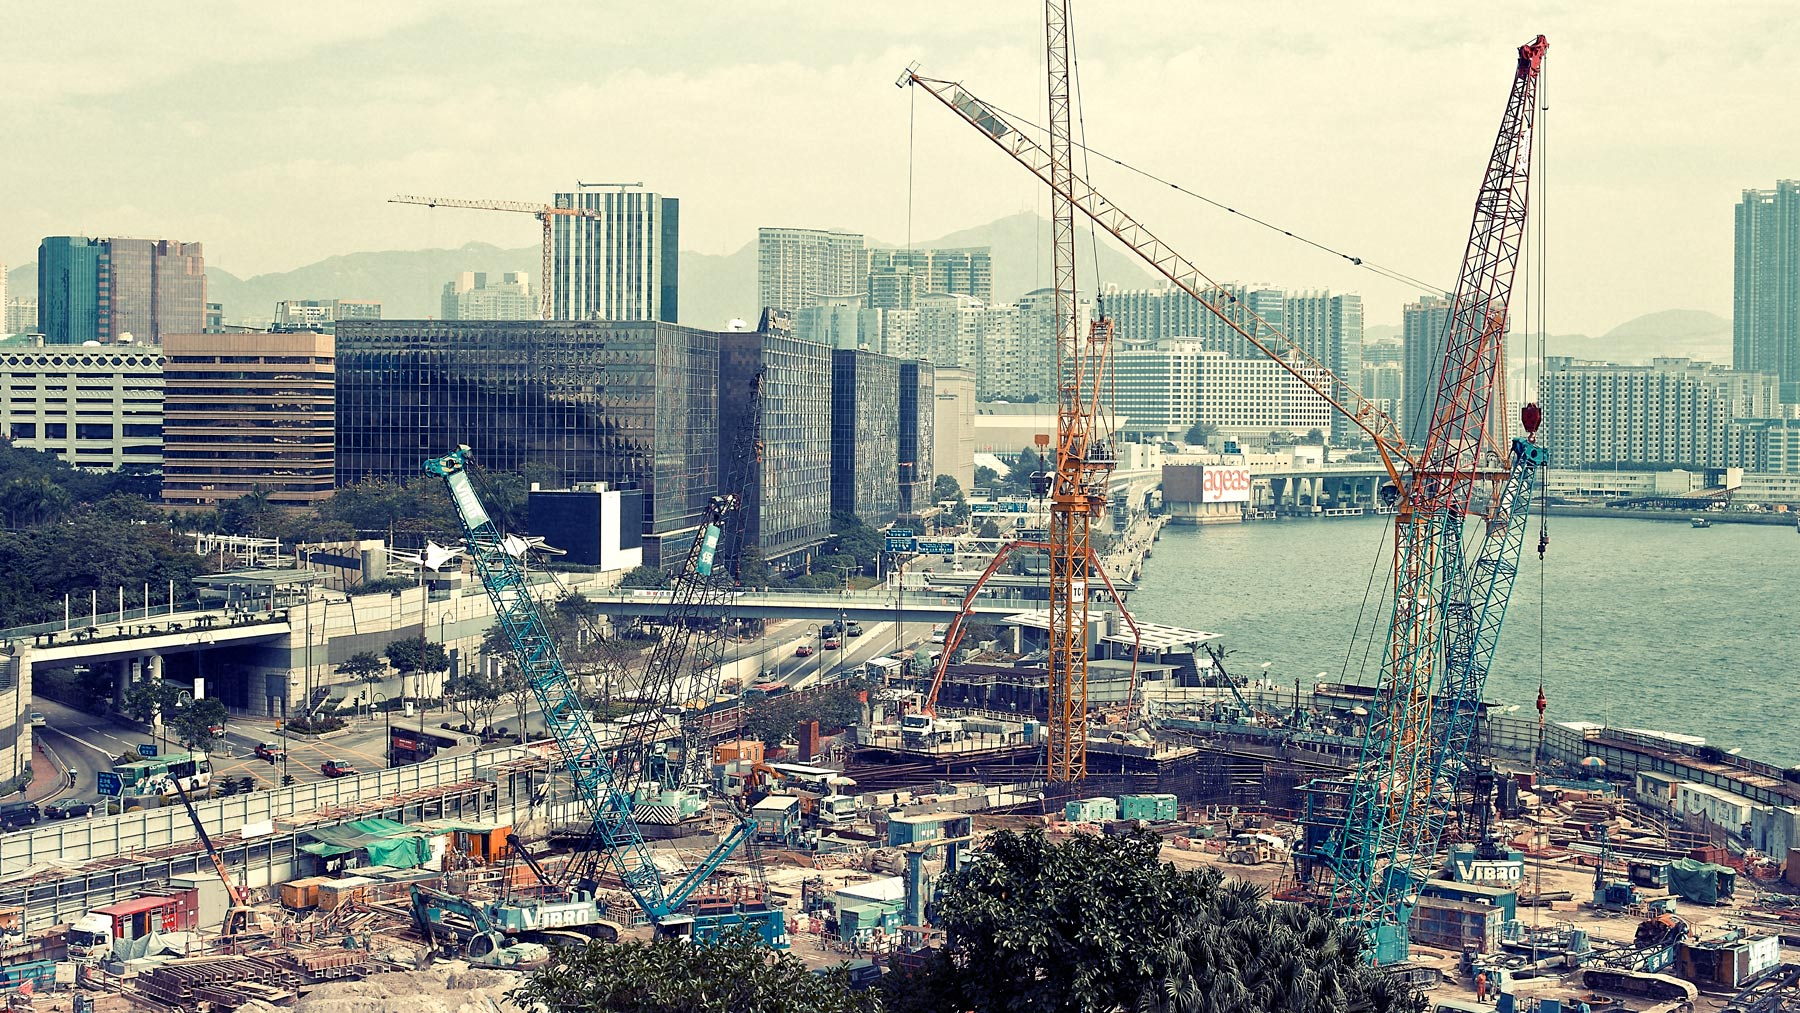 Good Boy Wolf Photographer, filmic landscape, building site in Hong Kong with cranes and building  site